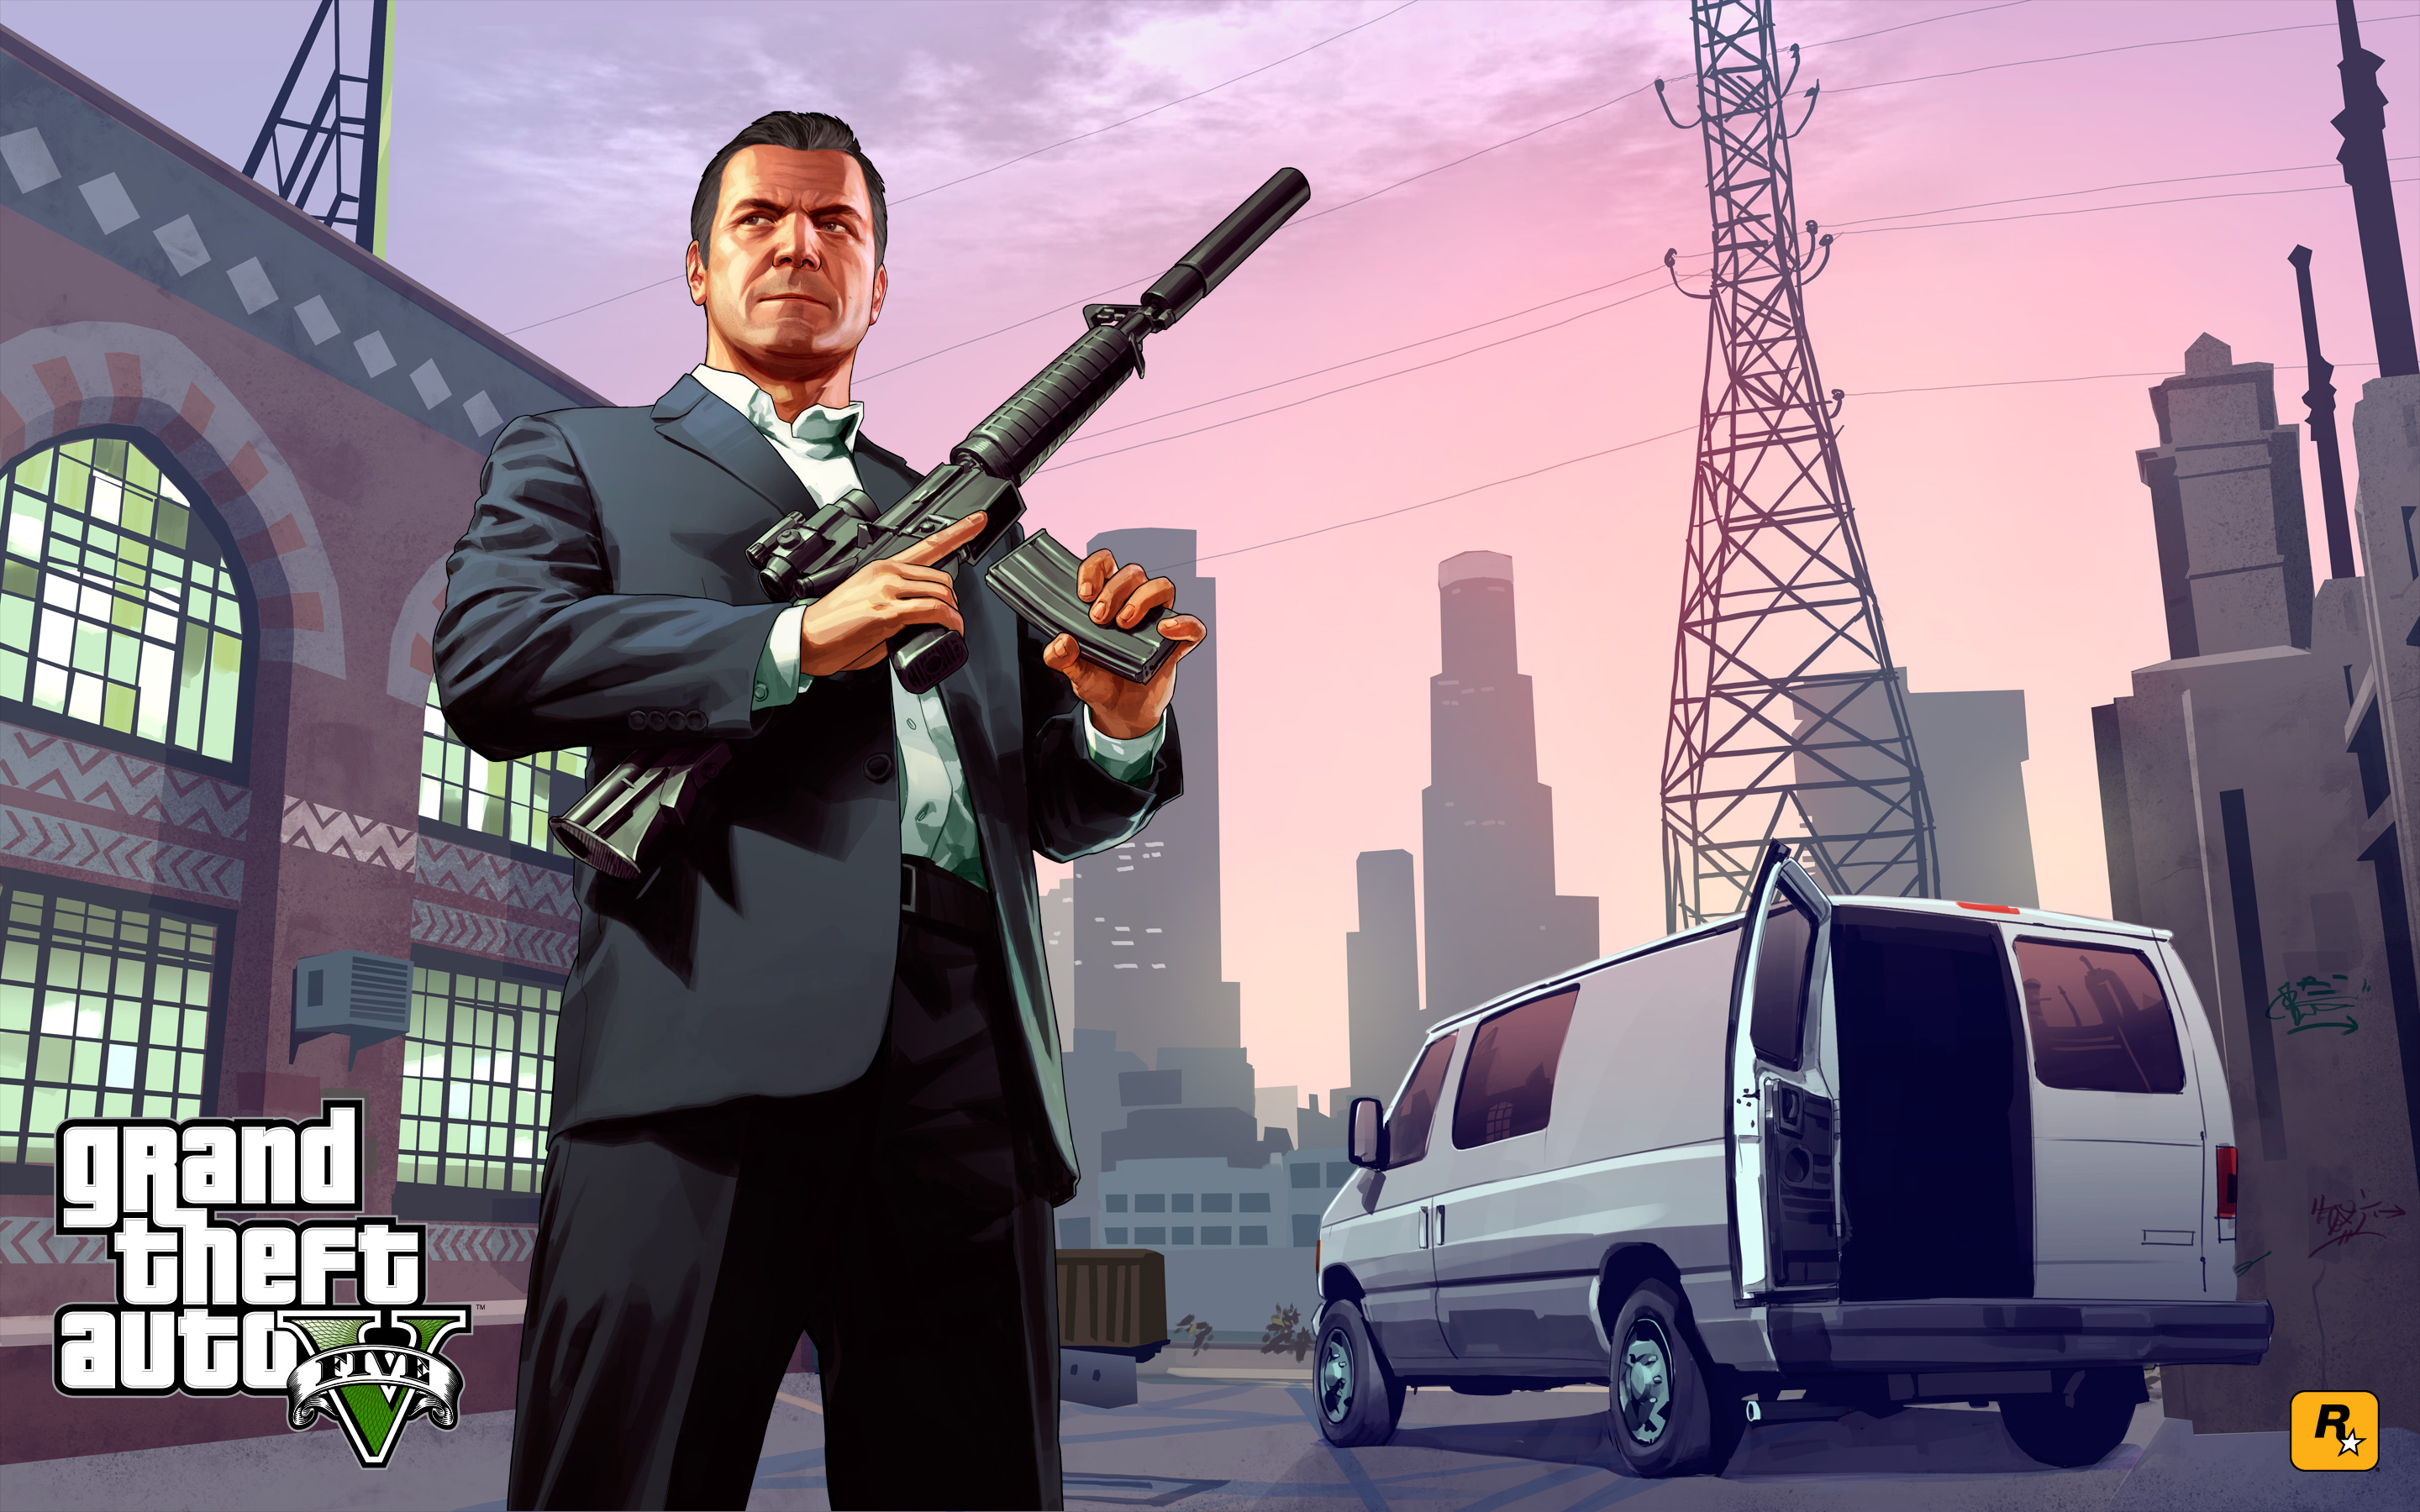 Grand Theft Auto 5 Wallpaper: Grand Theft Auto V Full HD Wallpaper And Background Image